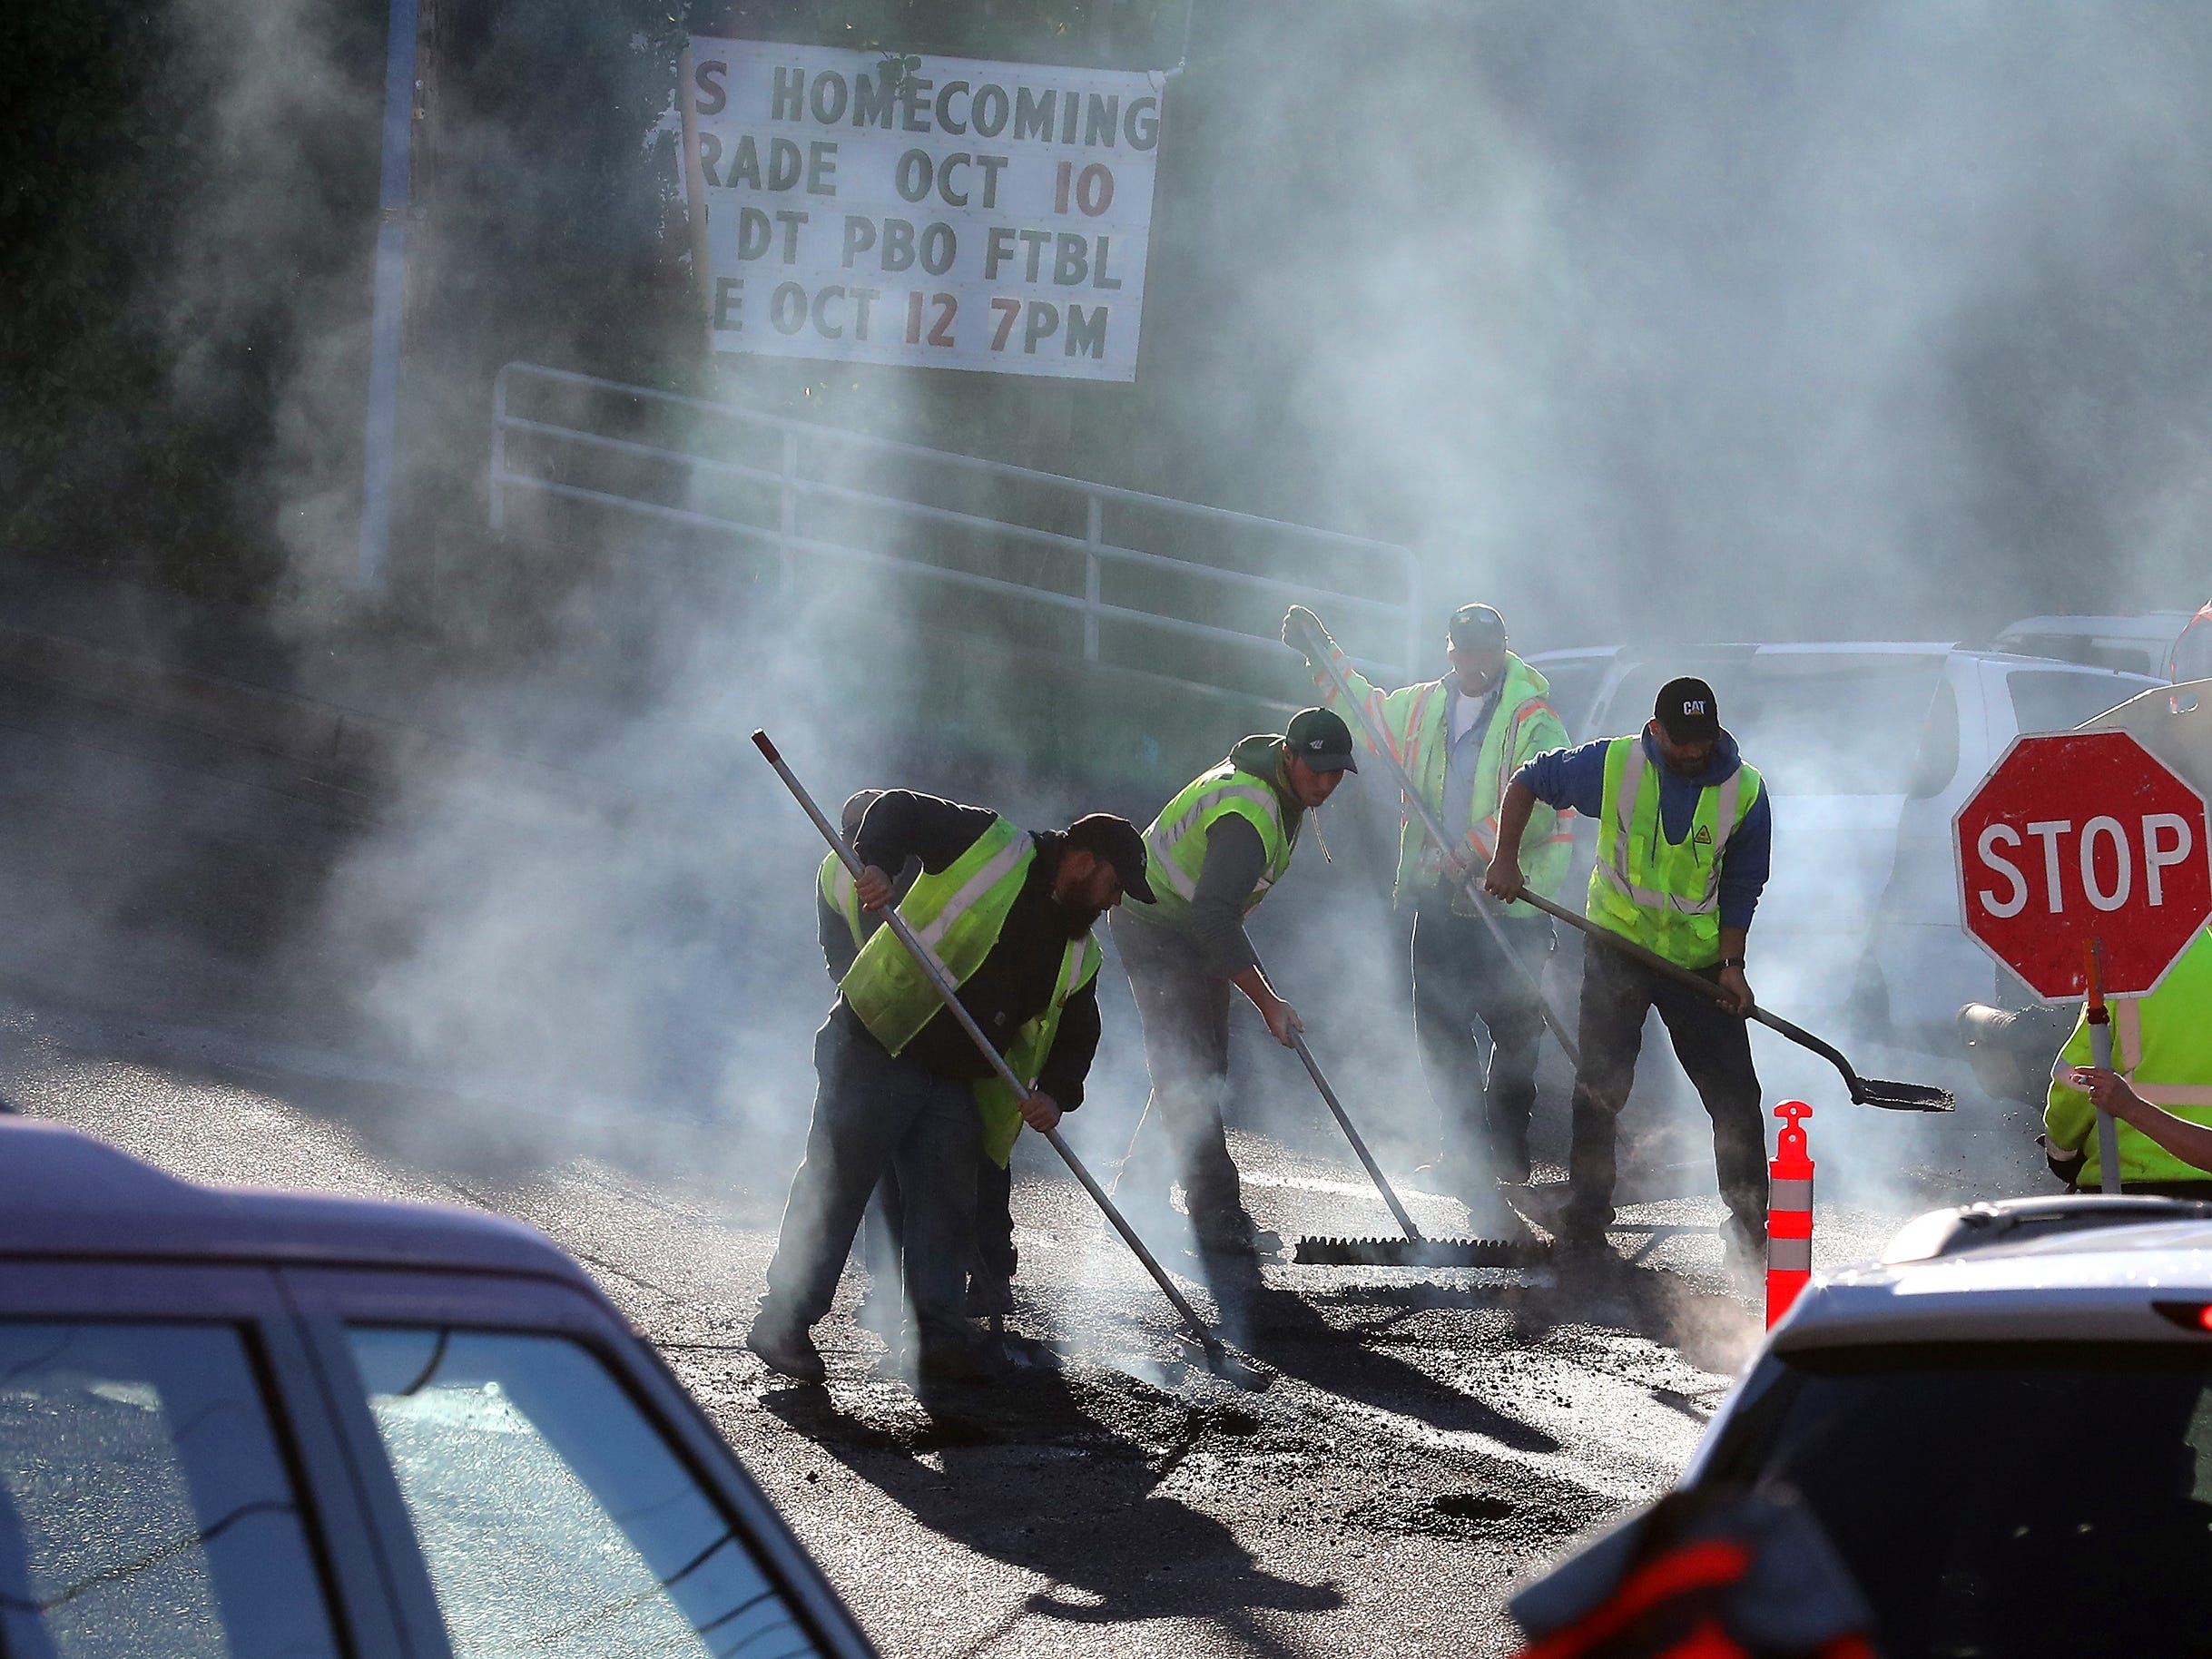 Steam rises as crews lay a fresh patch of asphalt on Front Street in downtown Poulsbo on Tuesday, October 9, 2018.